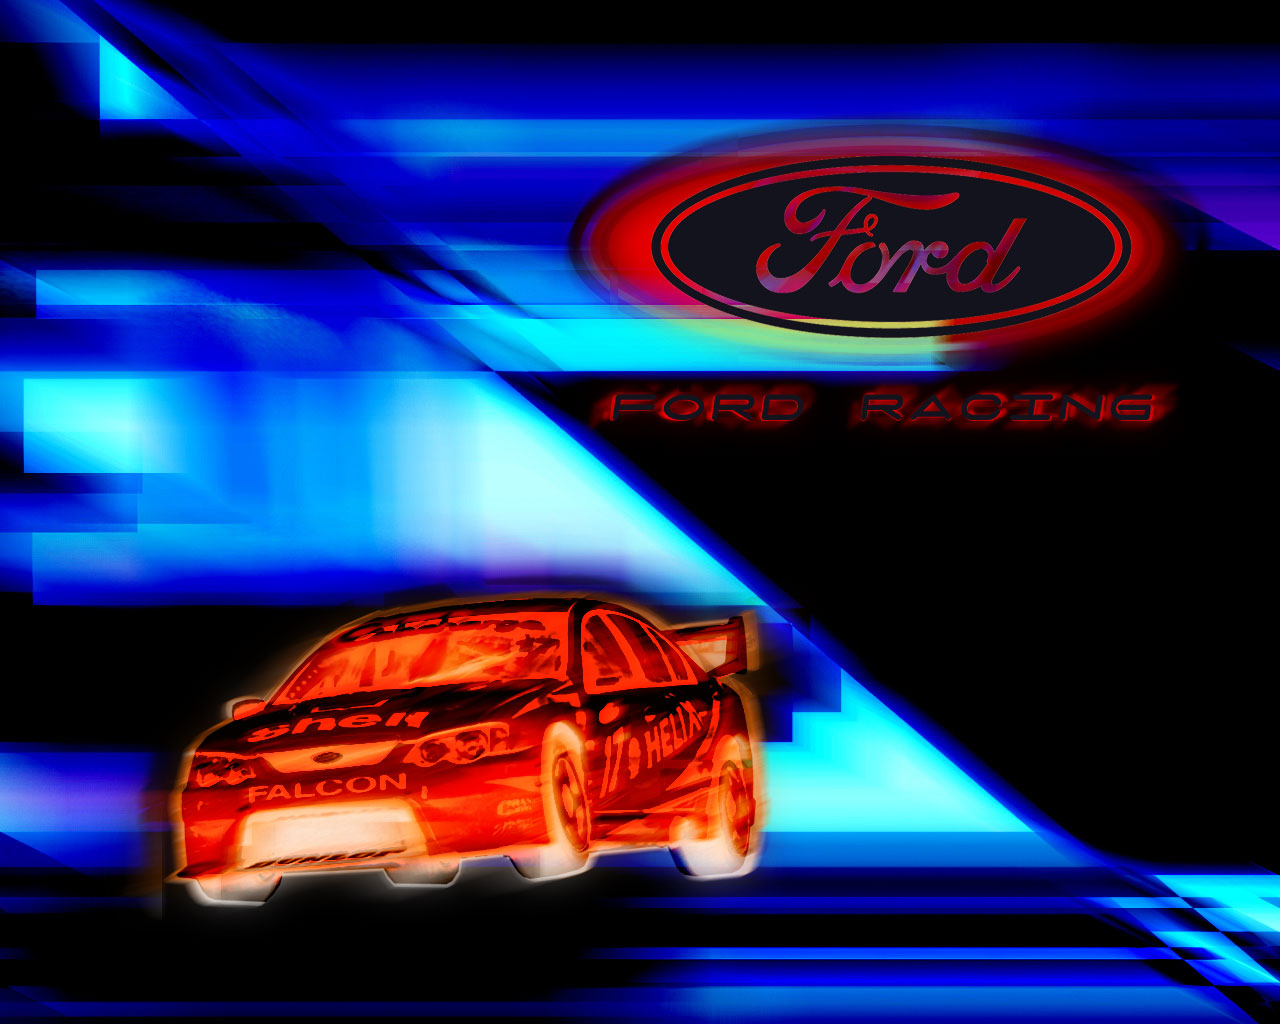 High Preformence Ford Wallpaper 800x384: [49+] Ford Racing Logo Wallpaper On WallpaperSafari